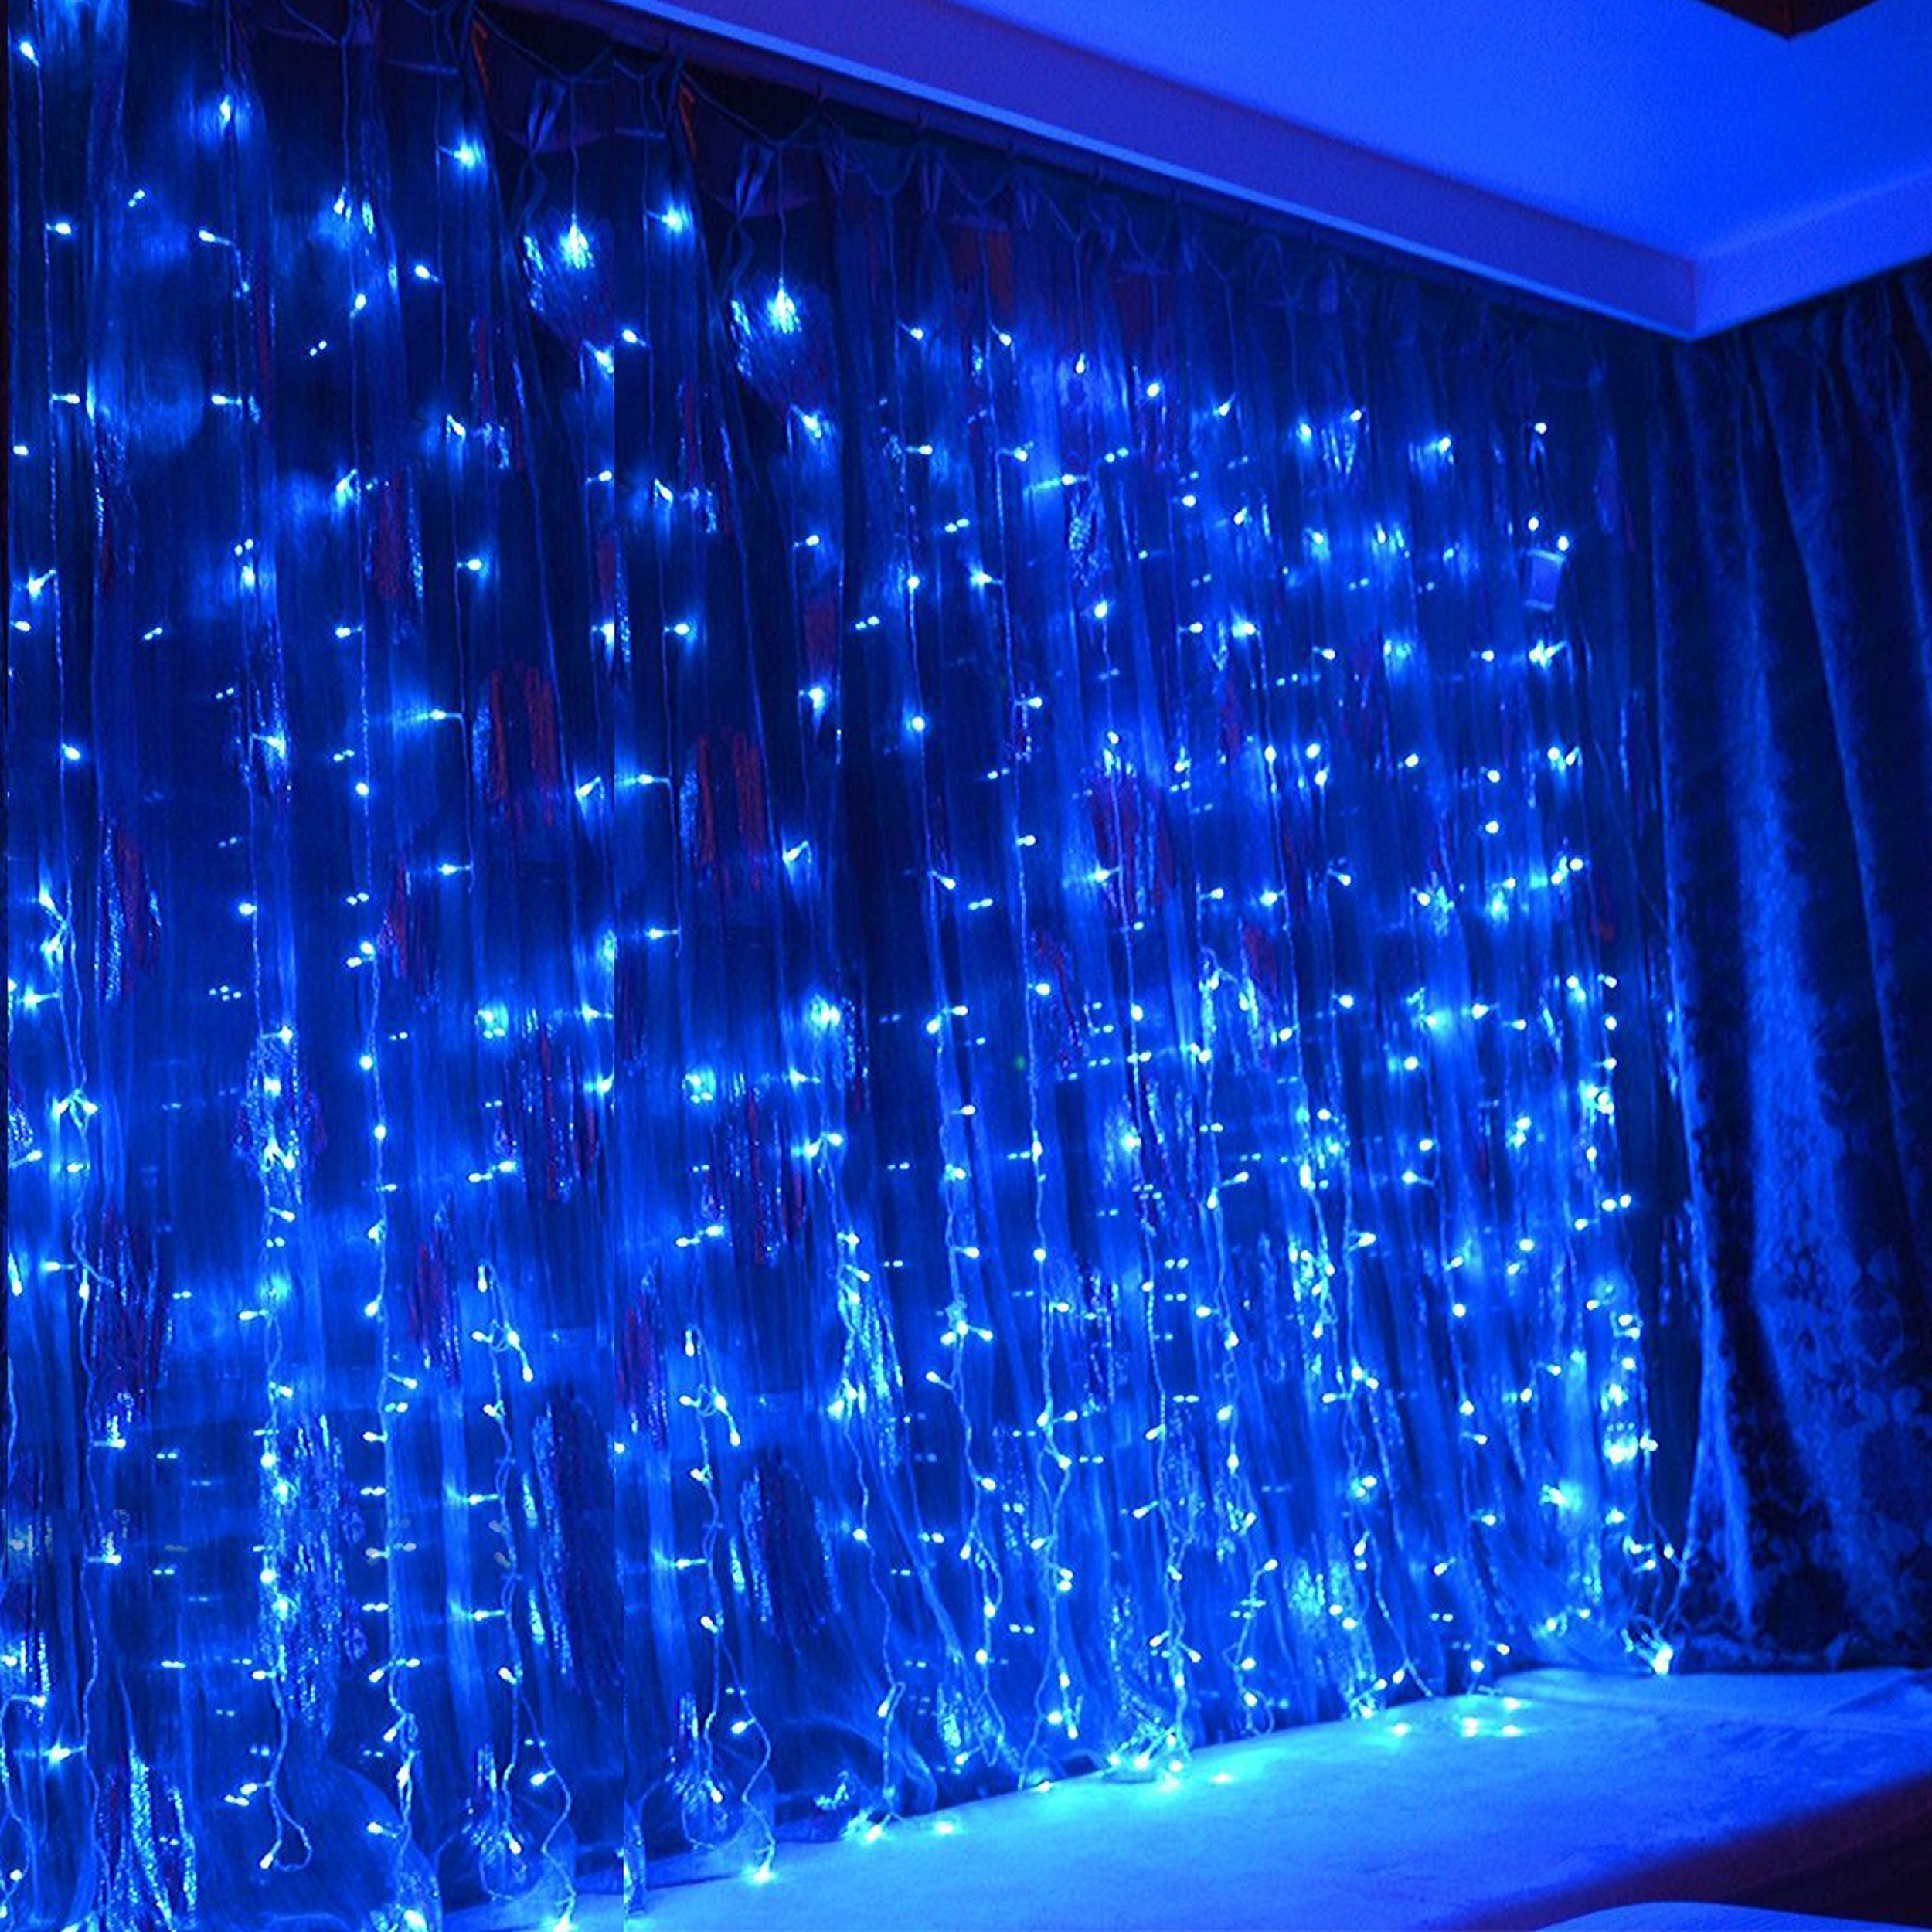 TORCHSTAR 9.8ft x 9.8ft LED Curtain Lights, Starry Christmas String Light,  Indoor/Outdoor Decoration for Festival, Wedding, Party, Living Room,